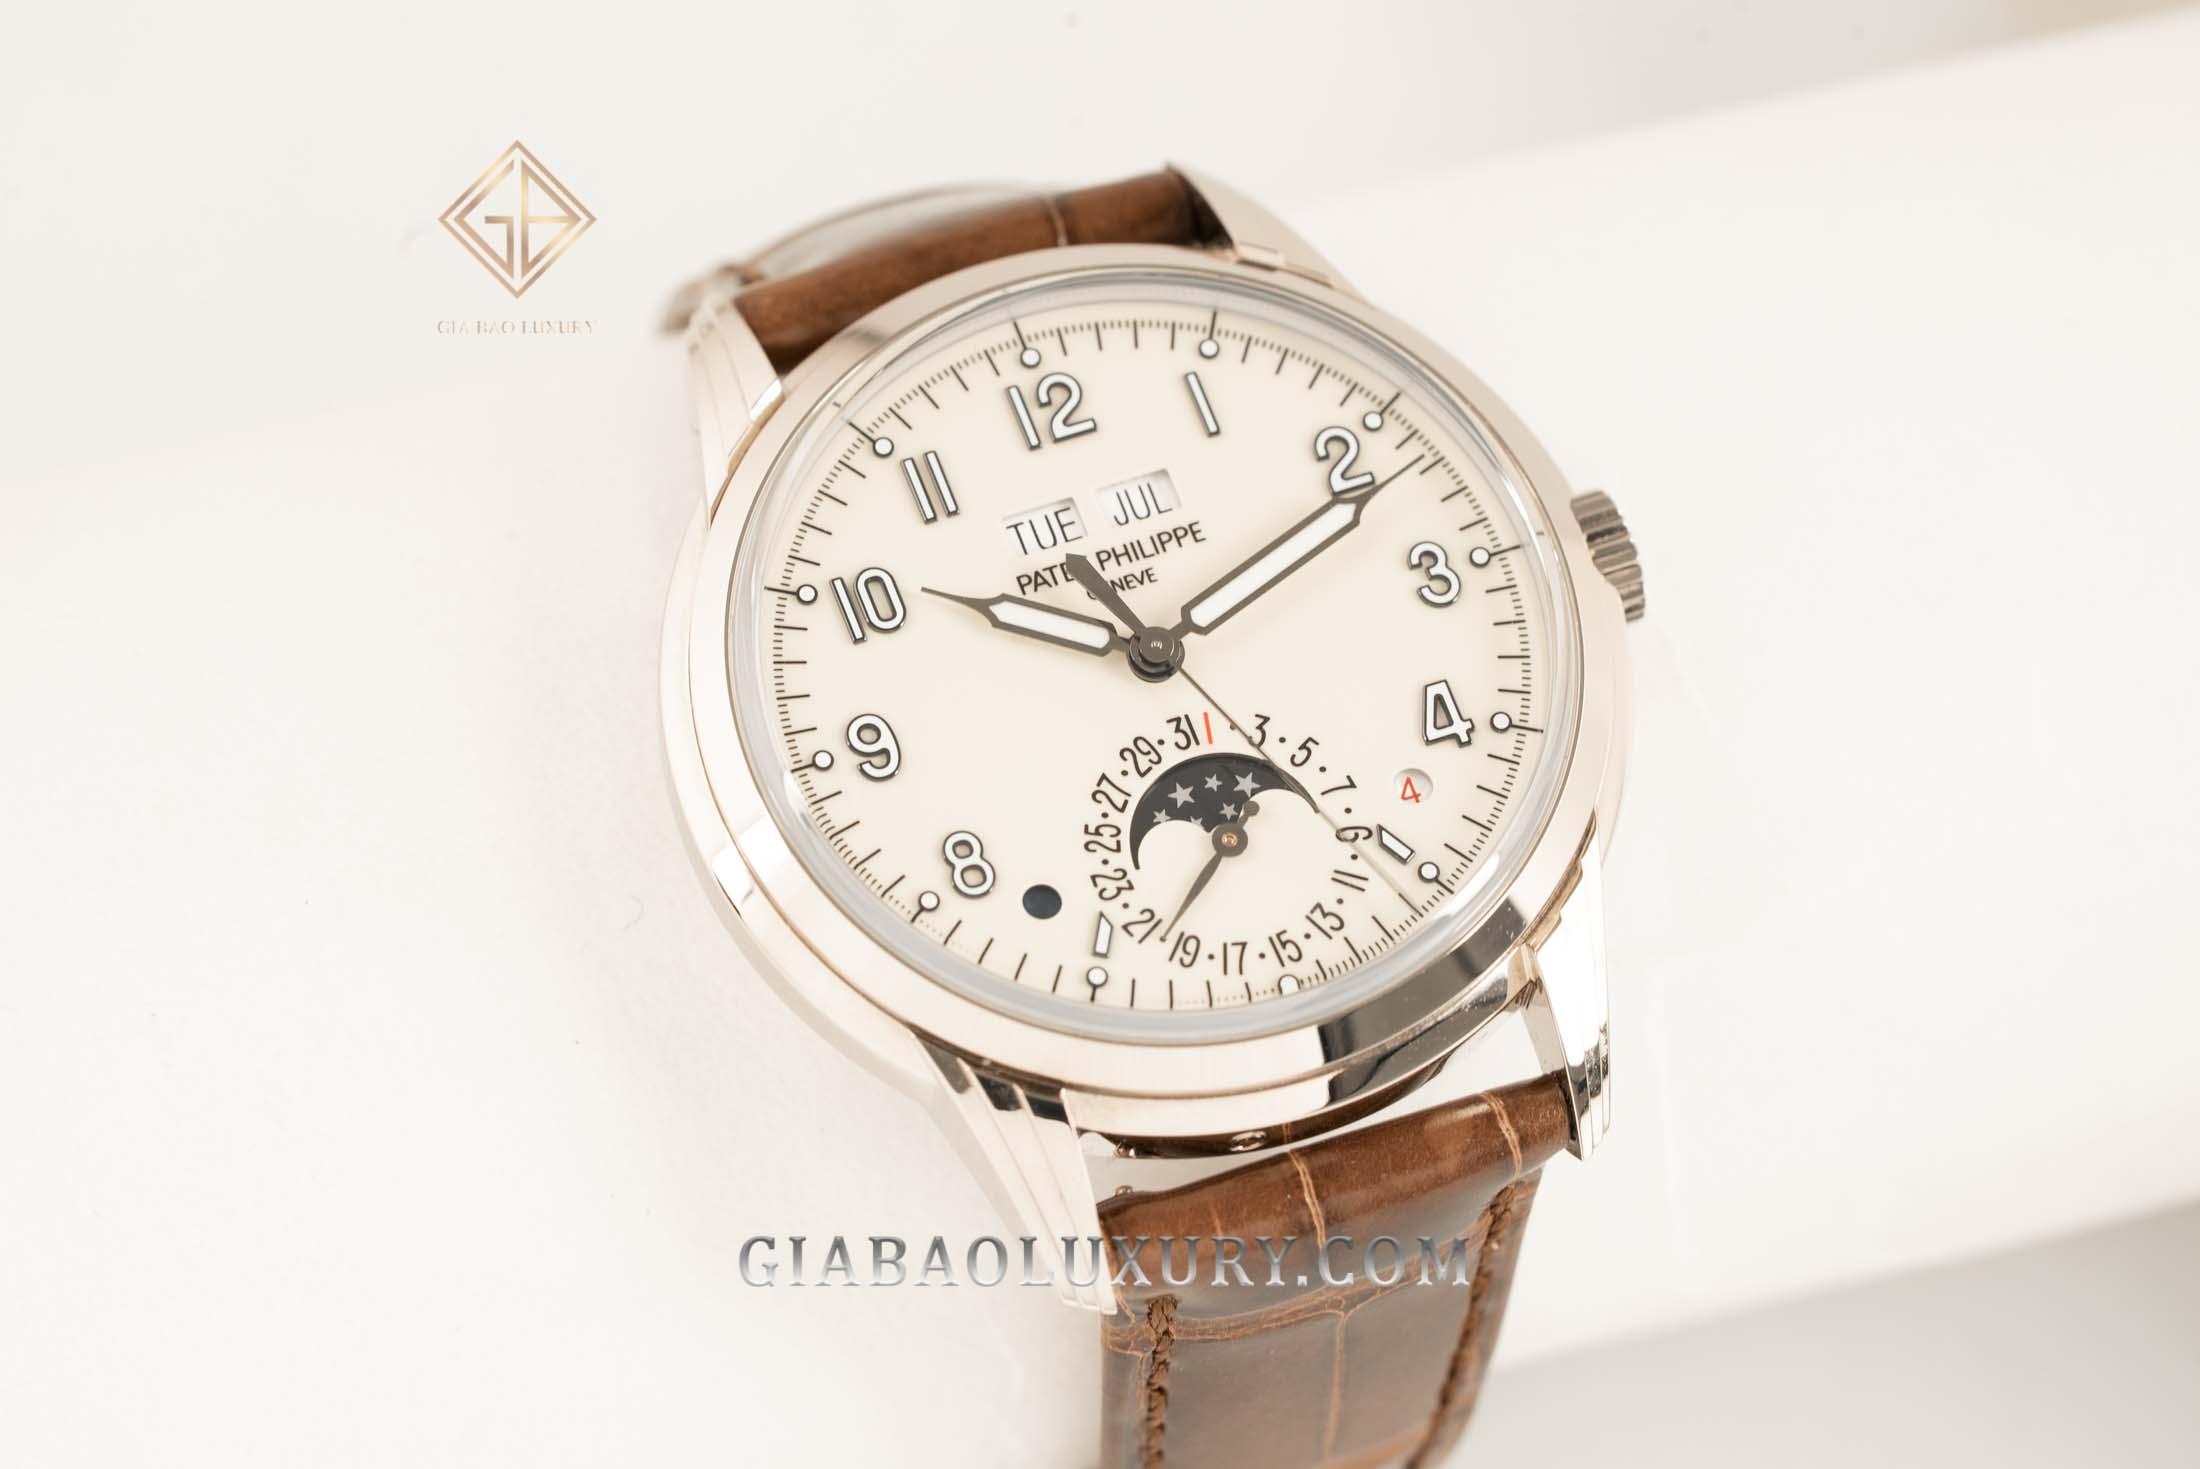 Đồng Hồ Patek Philippe Grand Complications 5320G-001